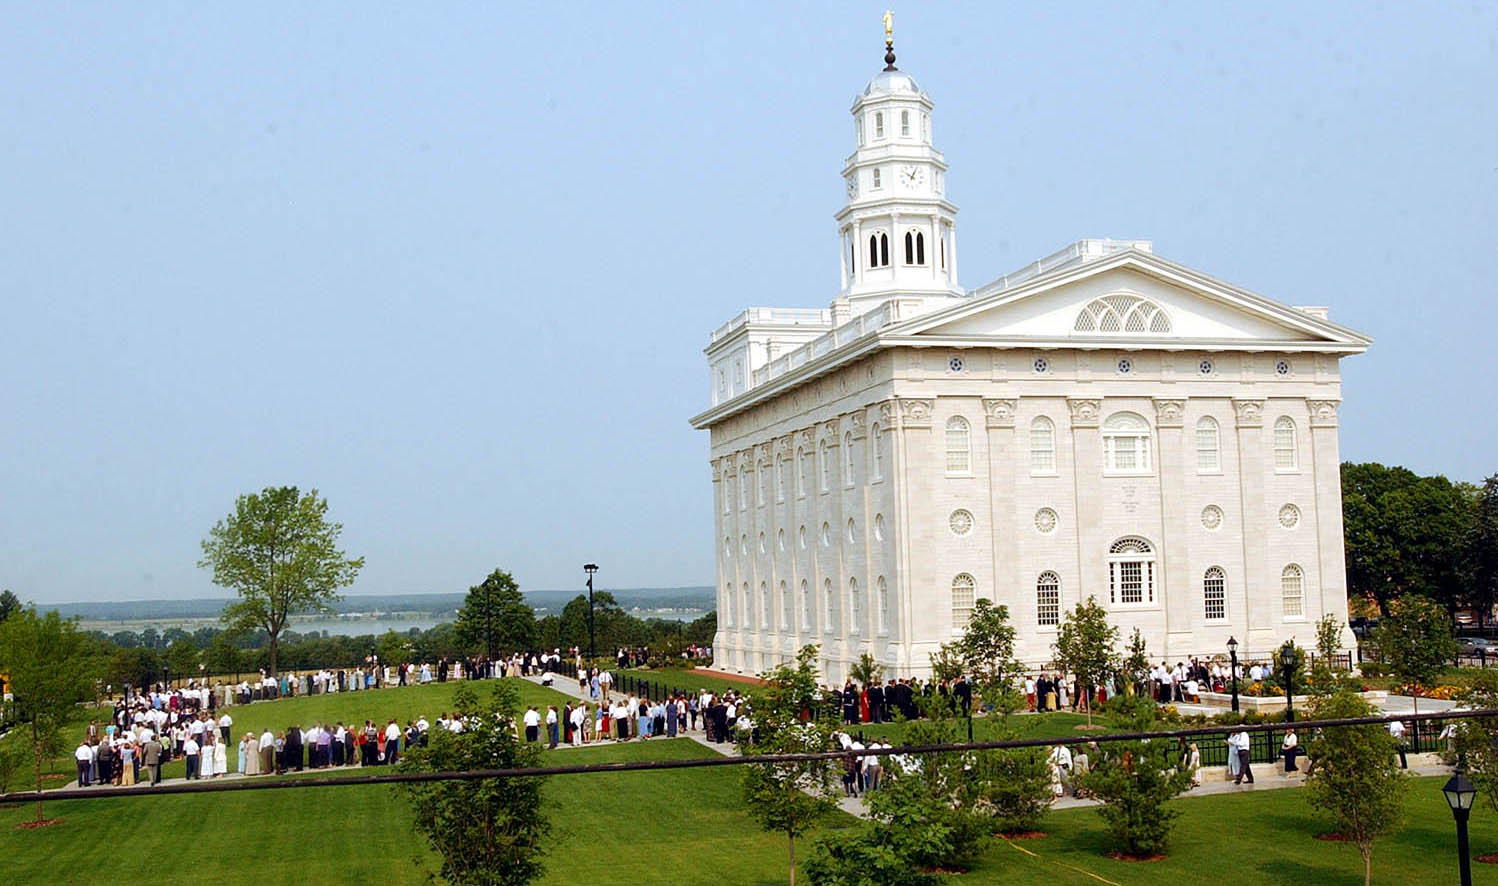 Latter-day Saints wait in line to attend a dedication session of the Nauvoo Illinois Temple June 28, 2002.